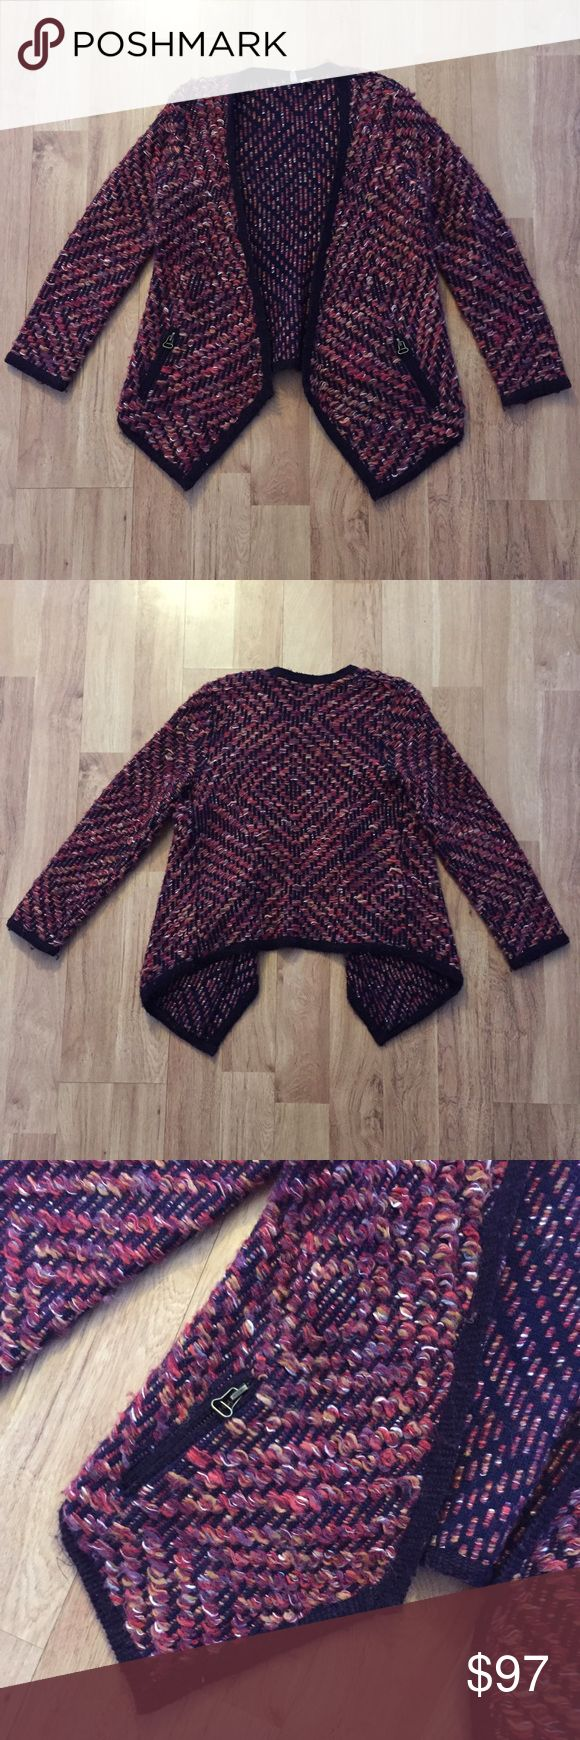 Anthropologie Brand Multicolor Cardigan Size M Anthropologie Brand called Moth. ⚜️I love receiving offers through the offer button!⚜️ Great condition, as seen in pictures! Fast same or next day shipping!📨 Open to offers but I don't negotiate in the comments so please use the offer button😊 Anthropologie Sweaters Cardigans